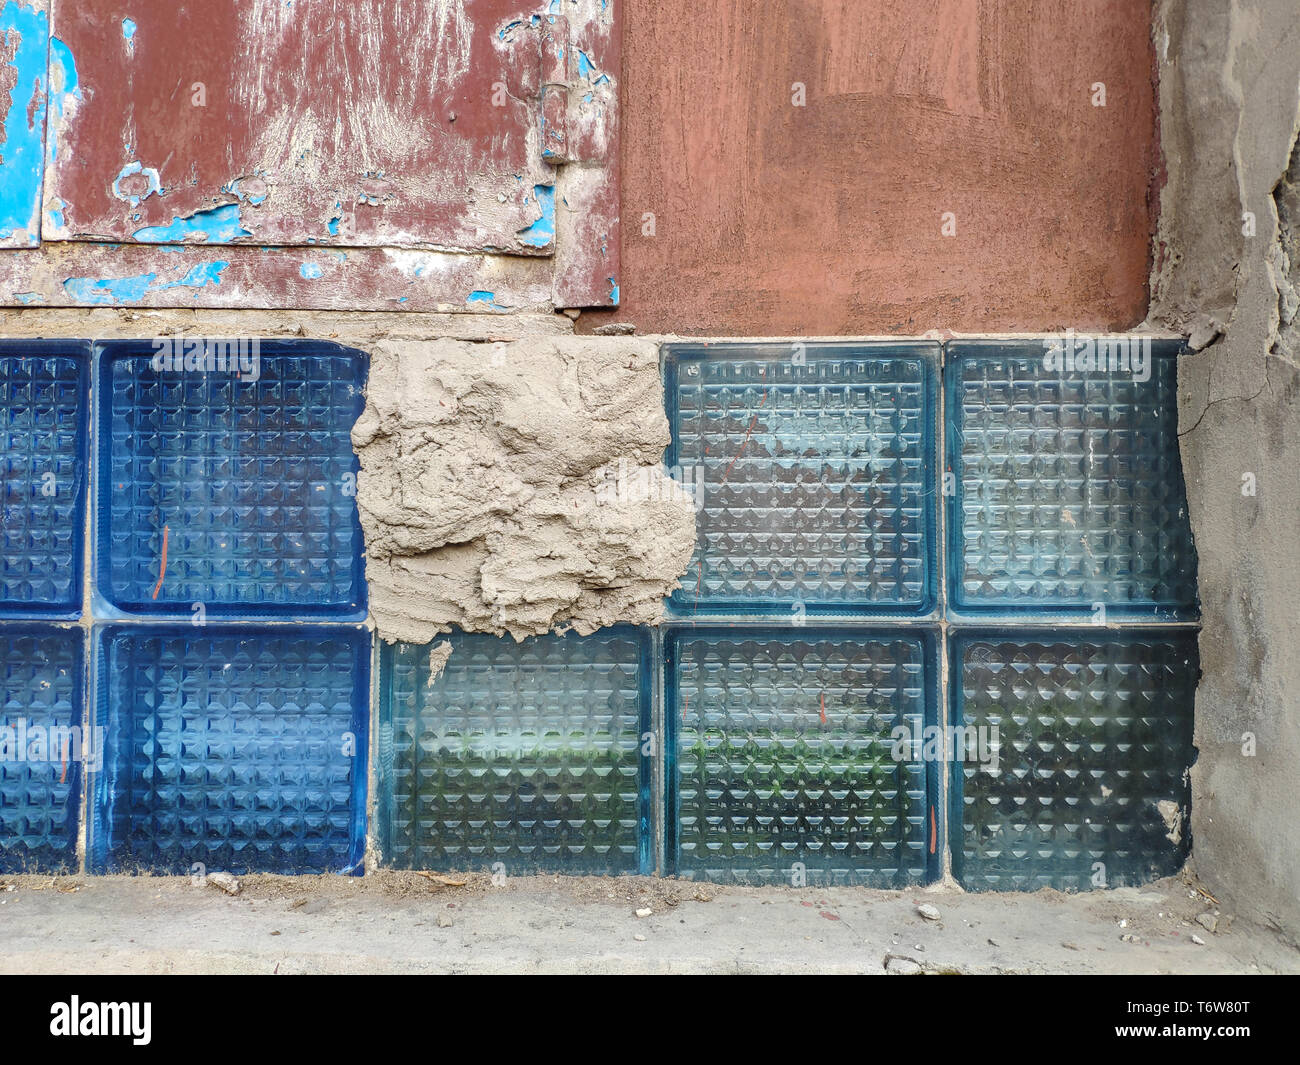 Texture background of old broken glass blocks for mockup or design pattern in construction, food or industrial flat layer of sample concept - Stock Image